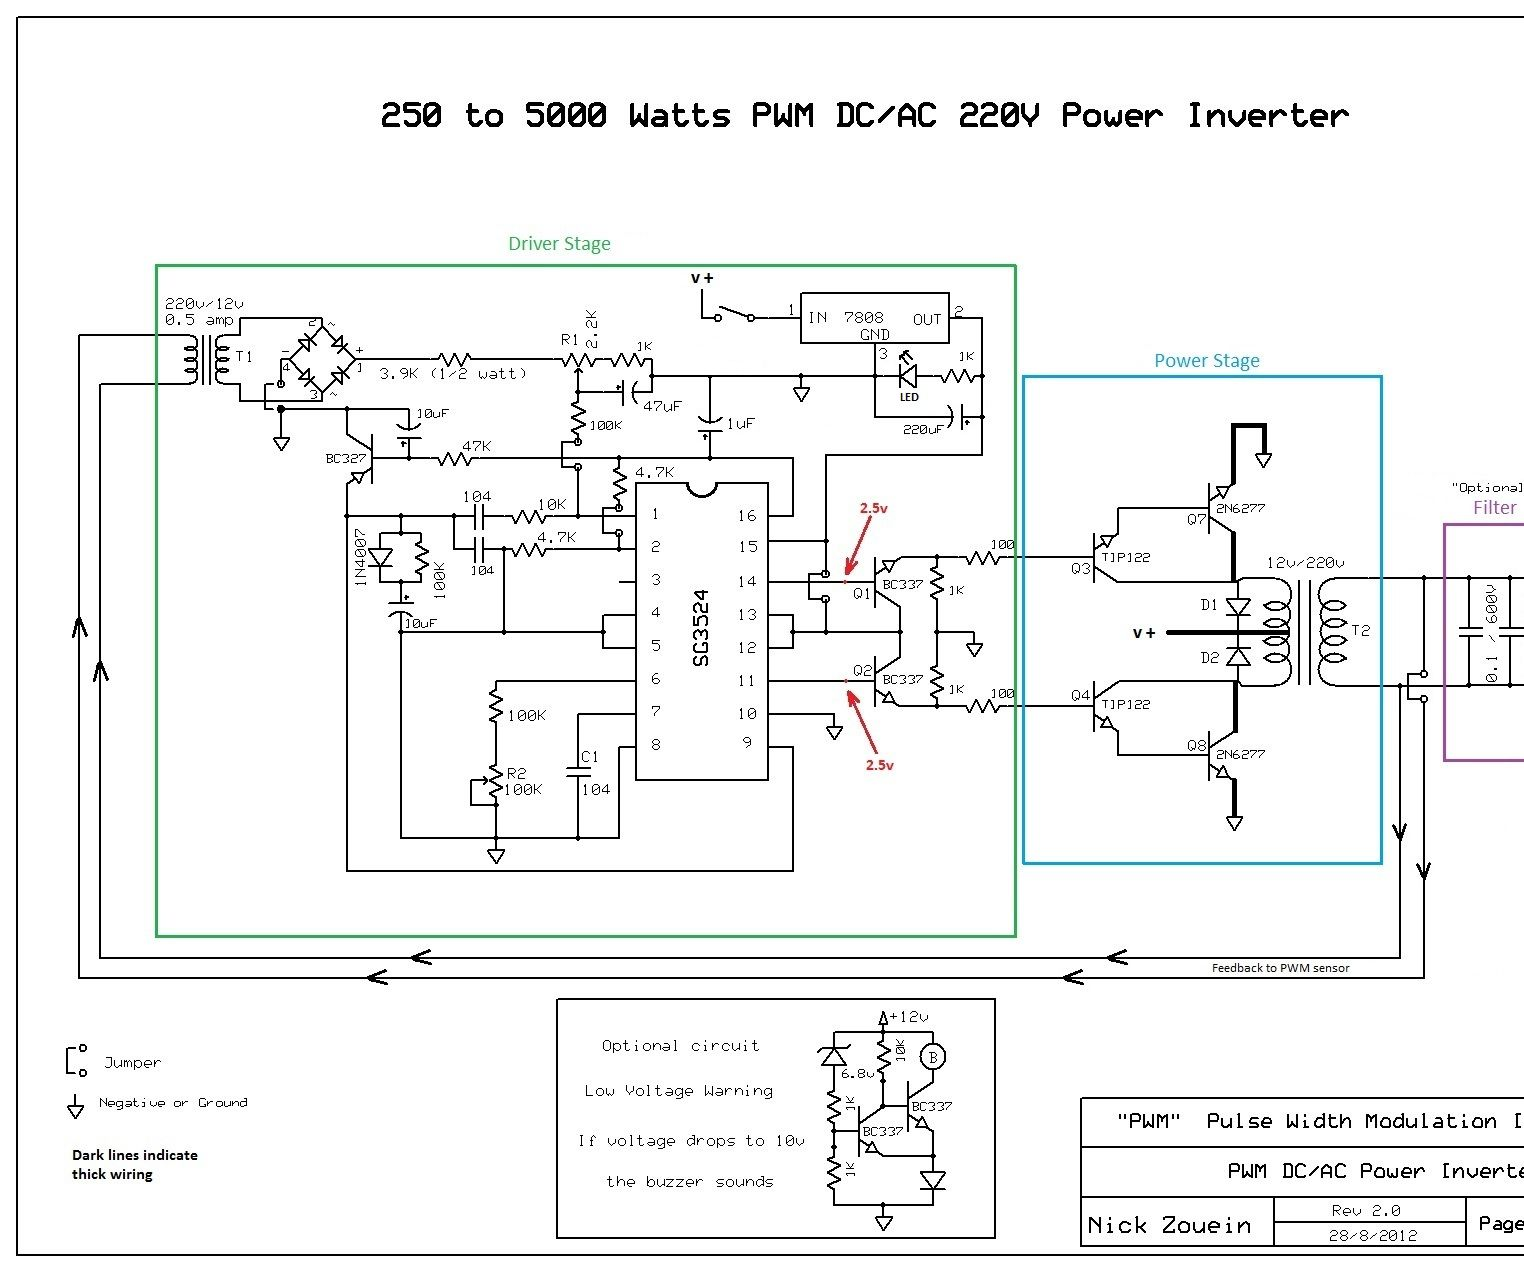 hight resolution of 250 to 5000 watts pwm dc ac 220v power inverter pin 300w atx schematic diagram on pinterest